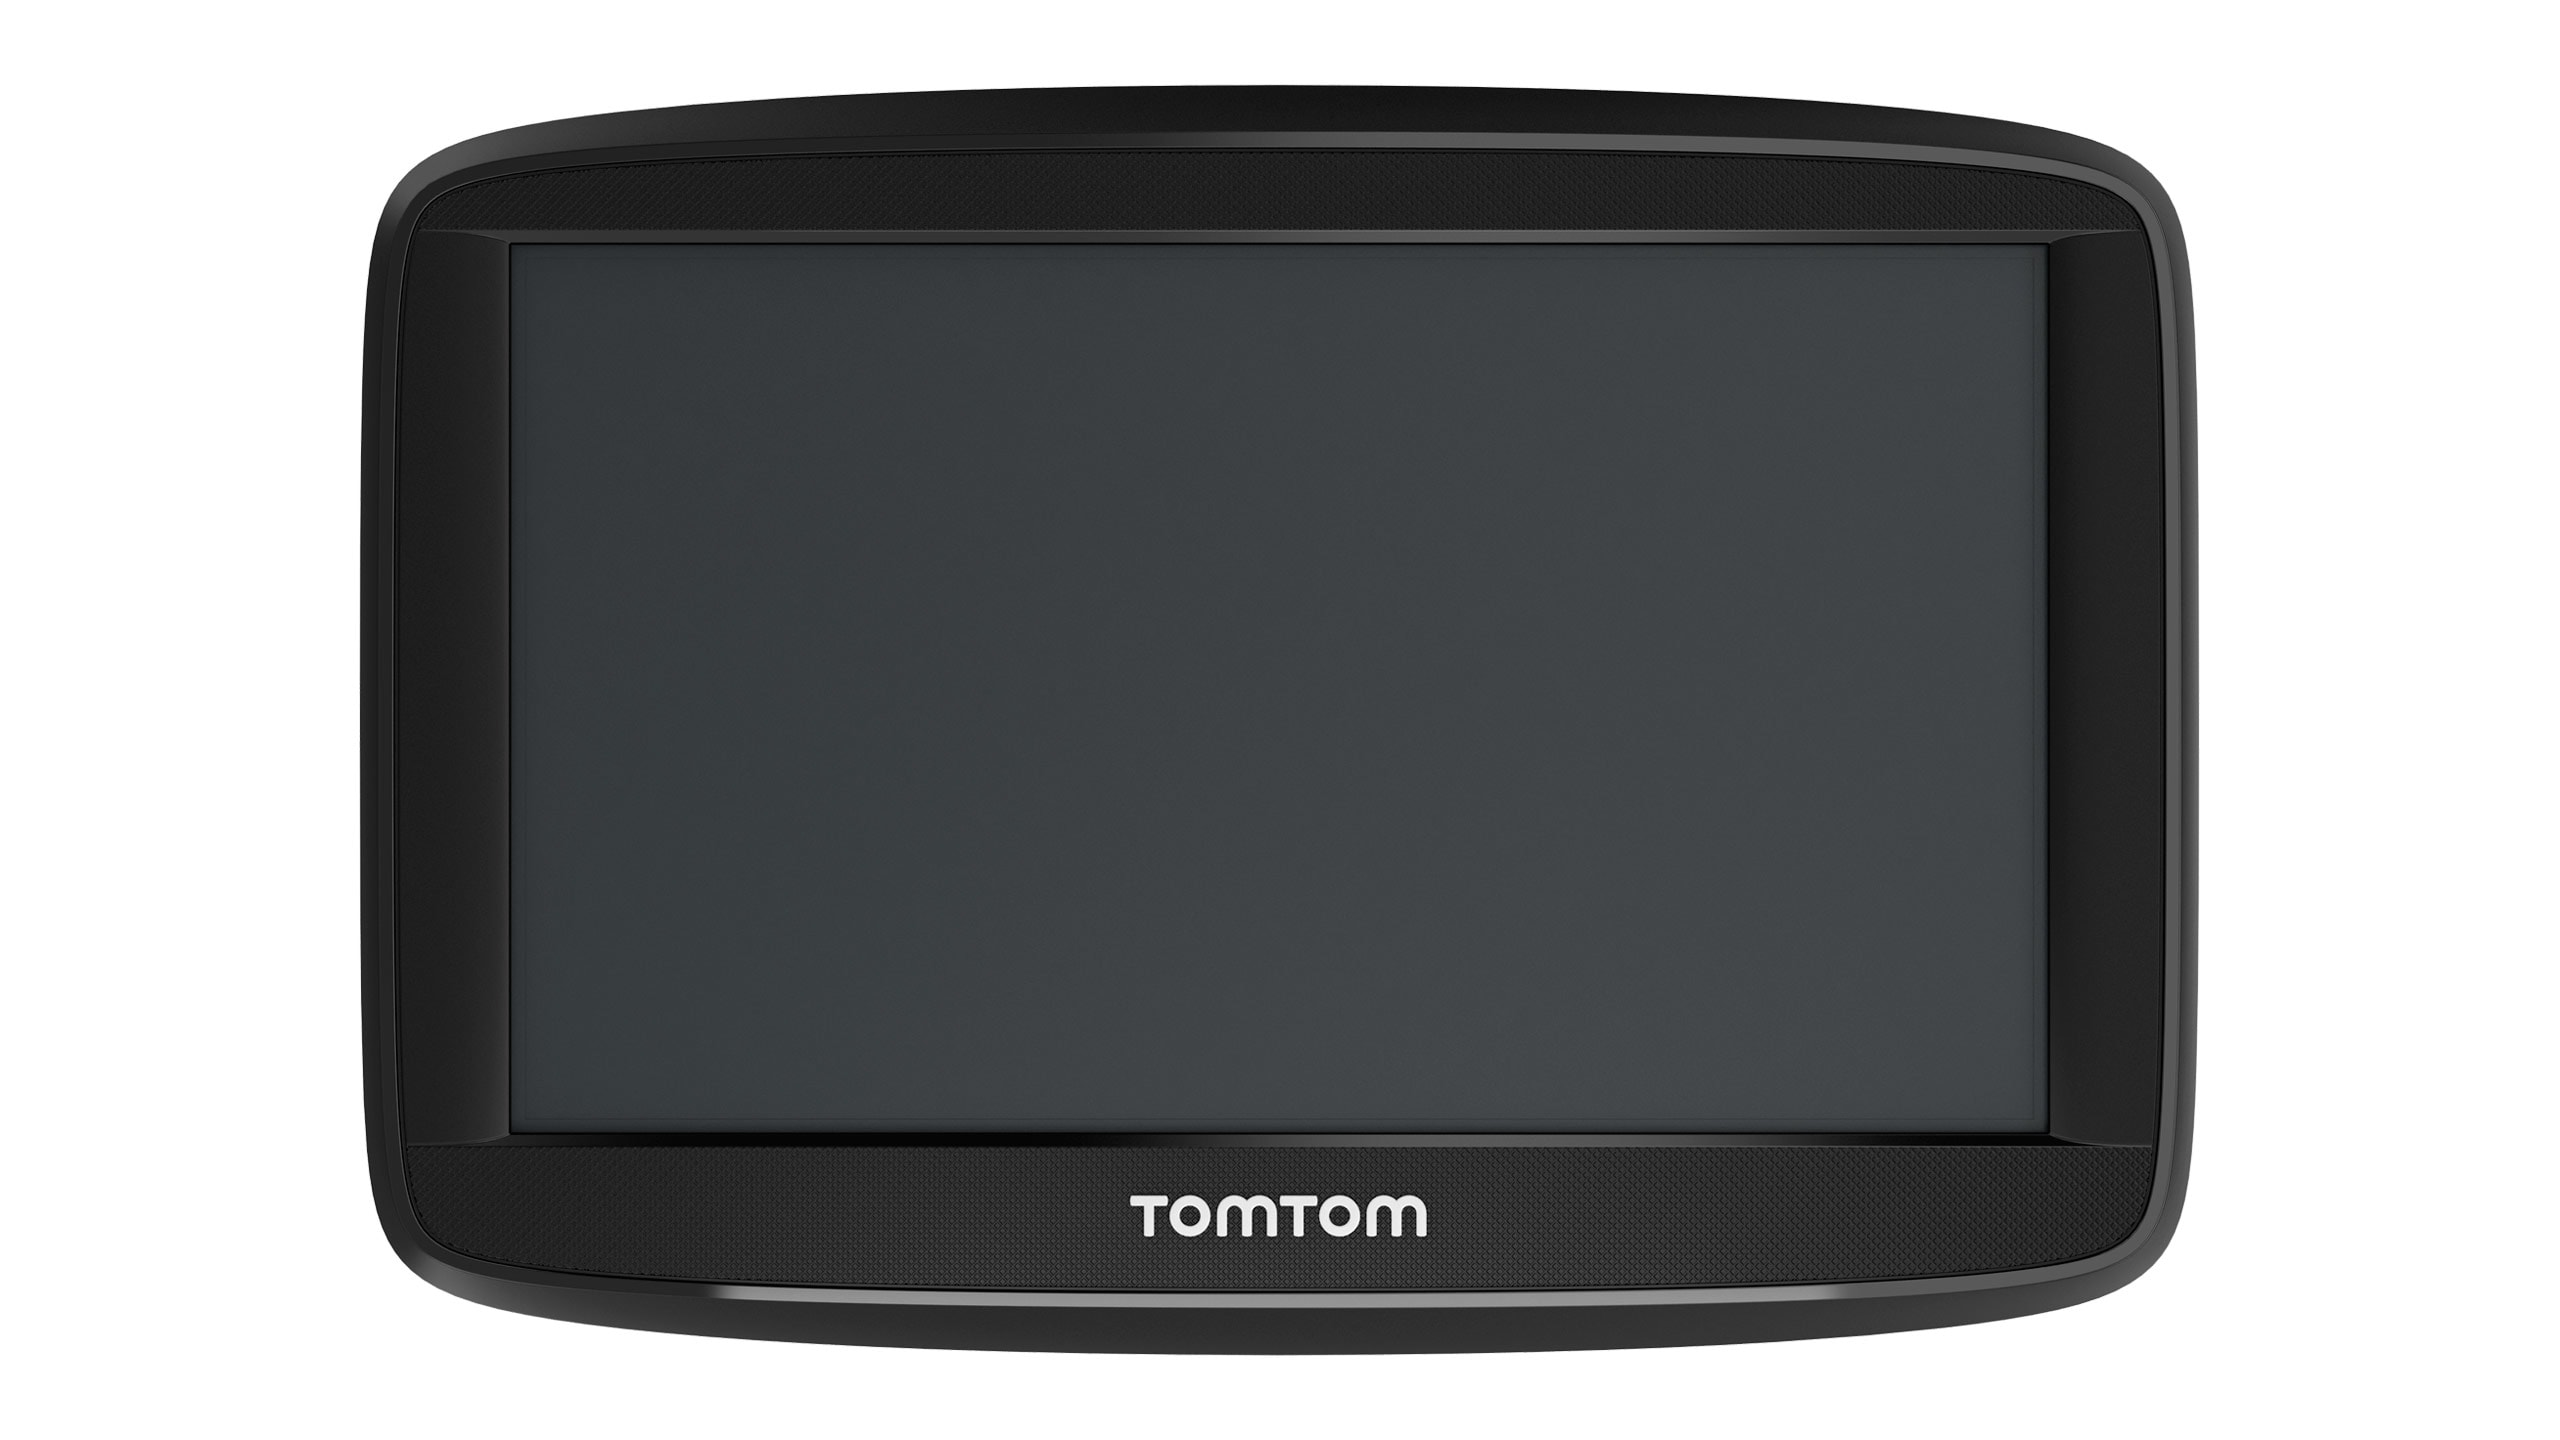 The TomTom VIA 1525M comes with Lifetime Maps to get you to your destination faster.